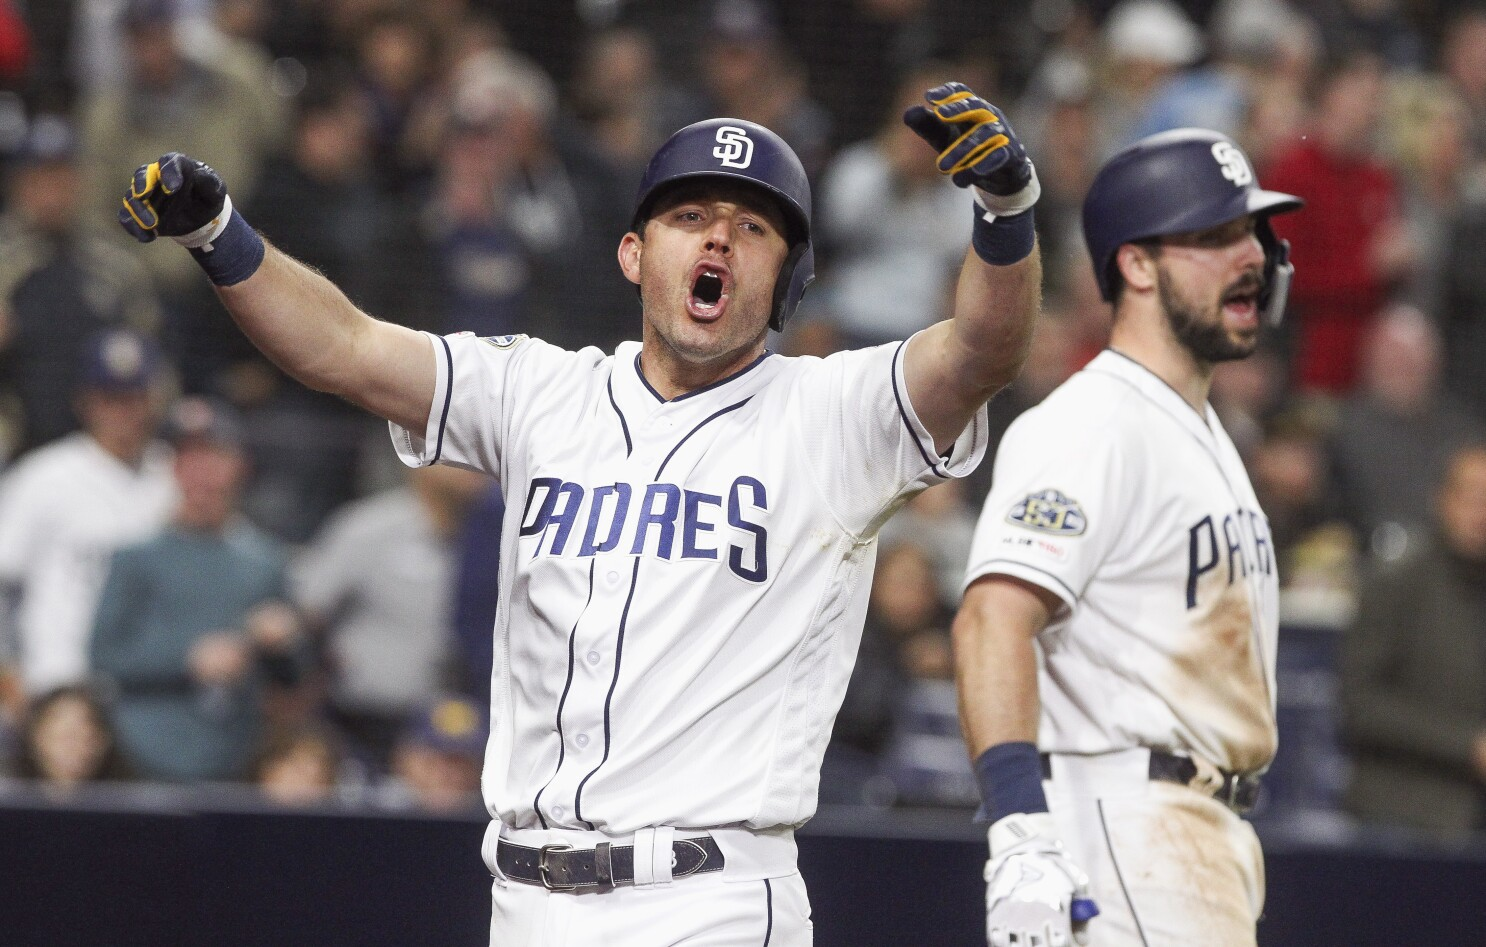 Ian Kinsler Says Emotional Response Wasnt Directed At Padres Fans